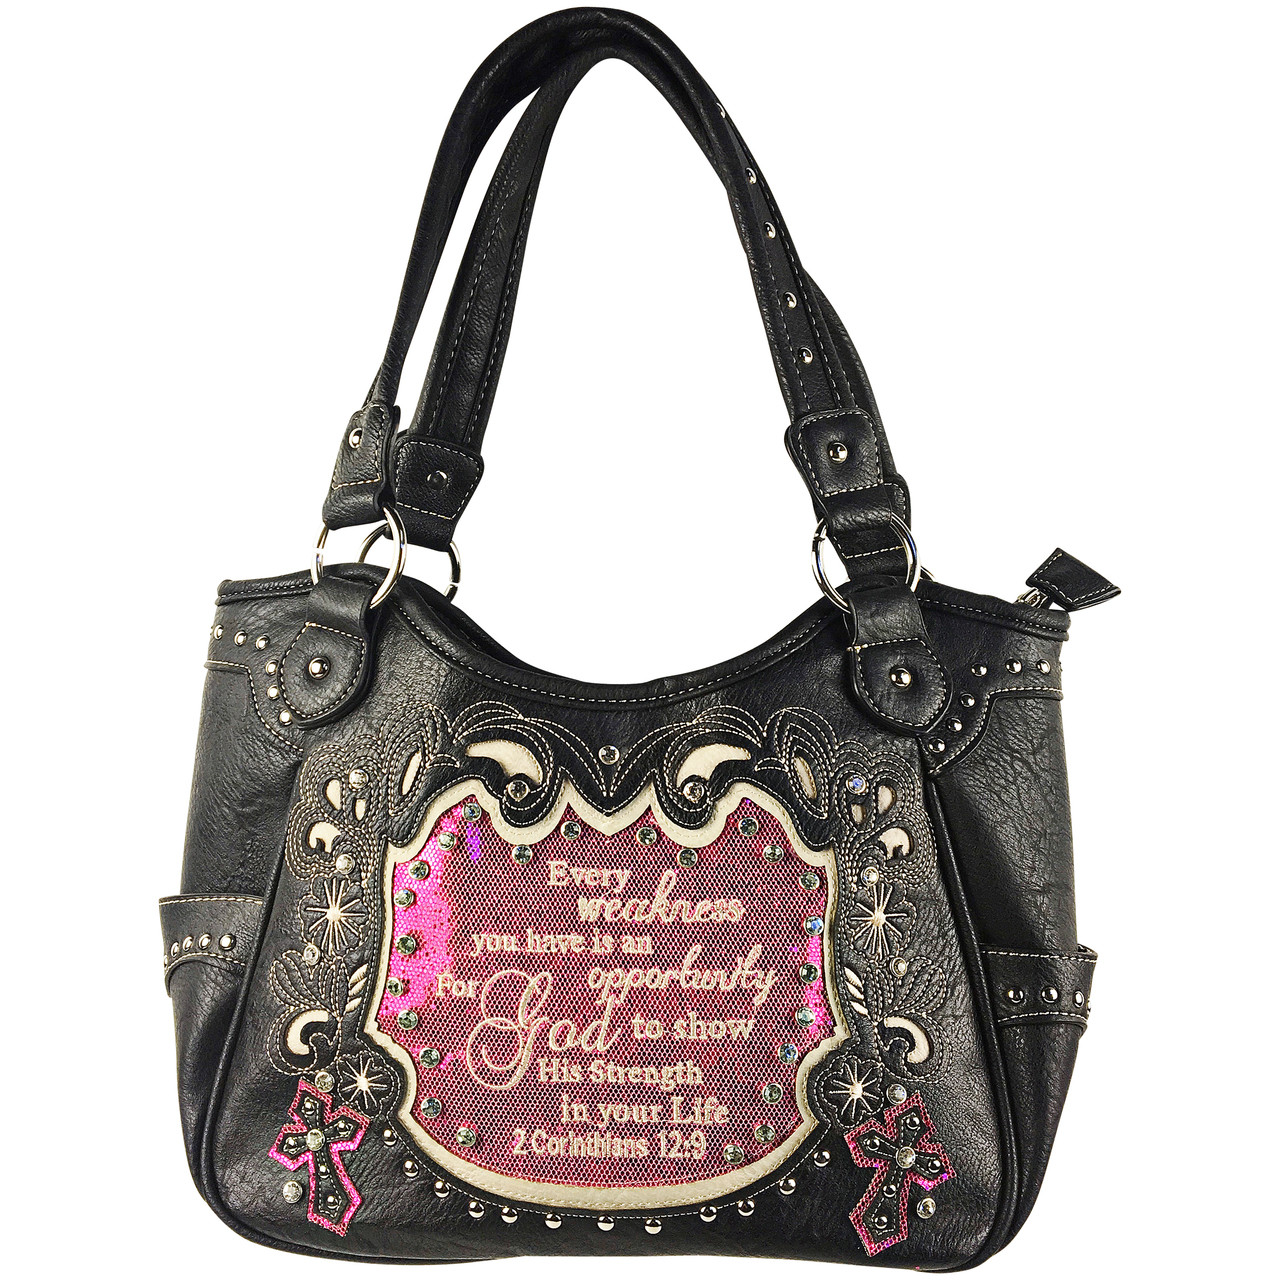 HOT PINK BIBLE LIFE QUOTE RHINESTONE STUDDED LOOK SHOULDER HANDBAG